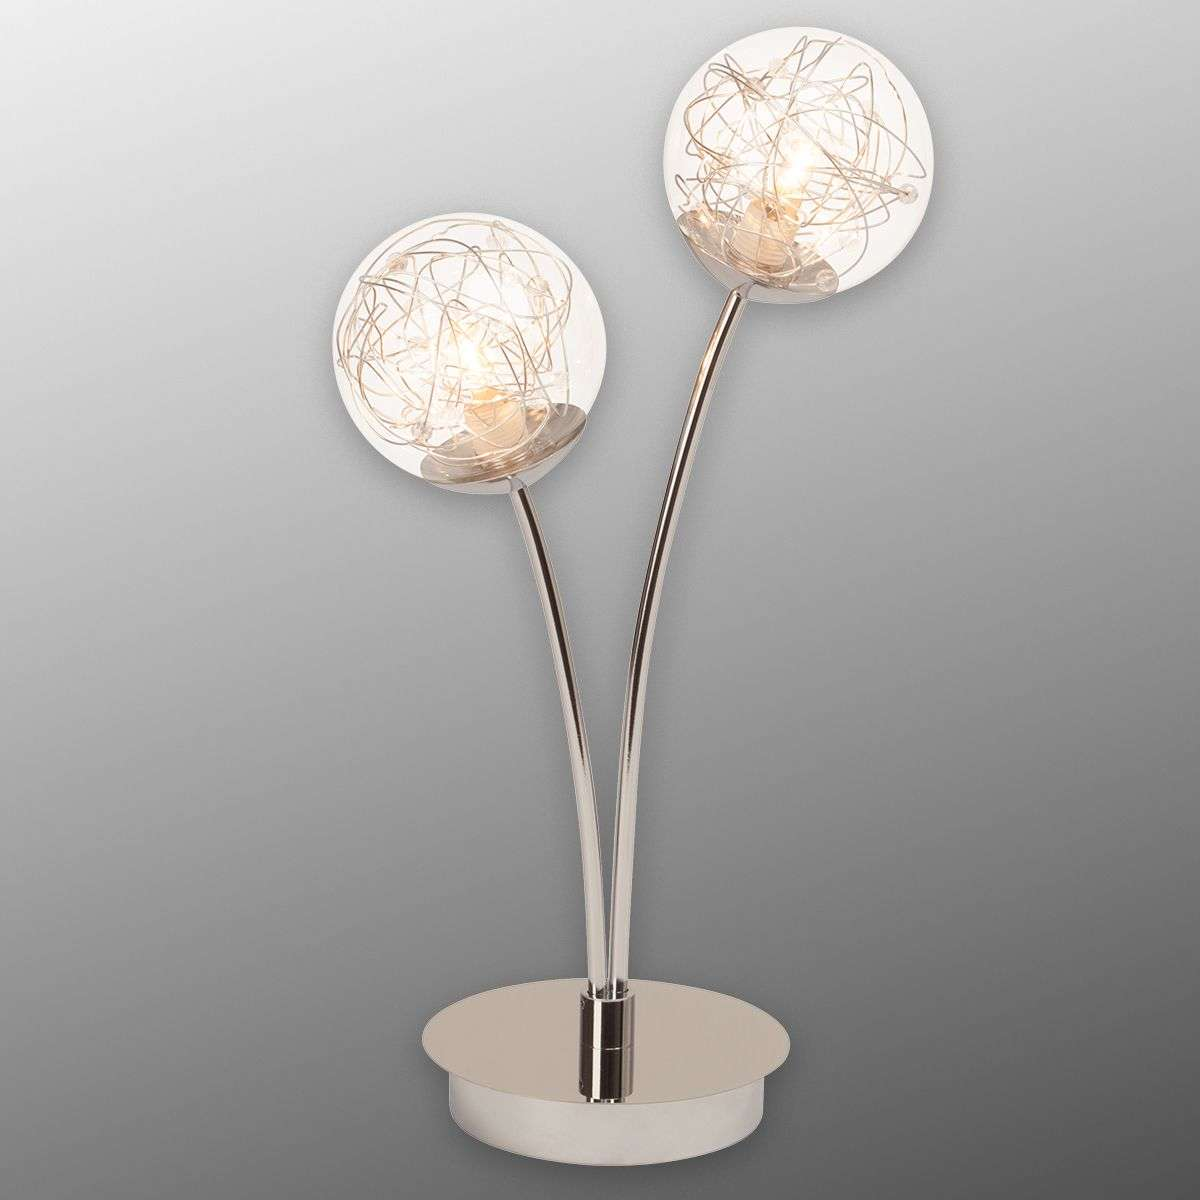 Joya 2-bulb table lamp with glass lampshades-1509043-31